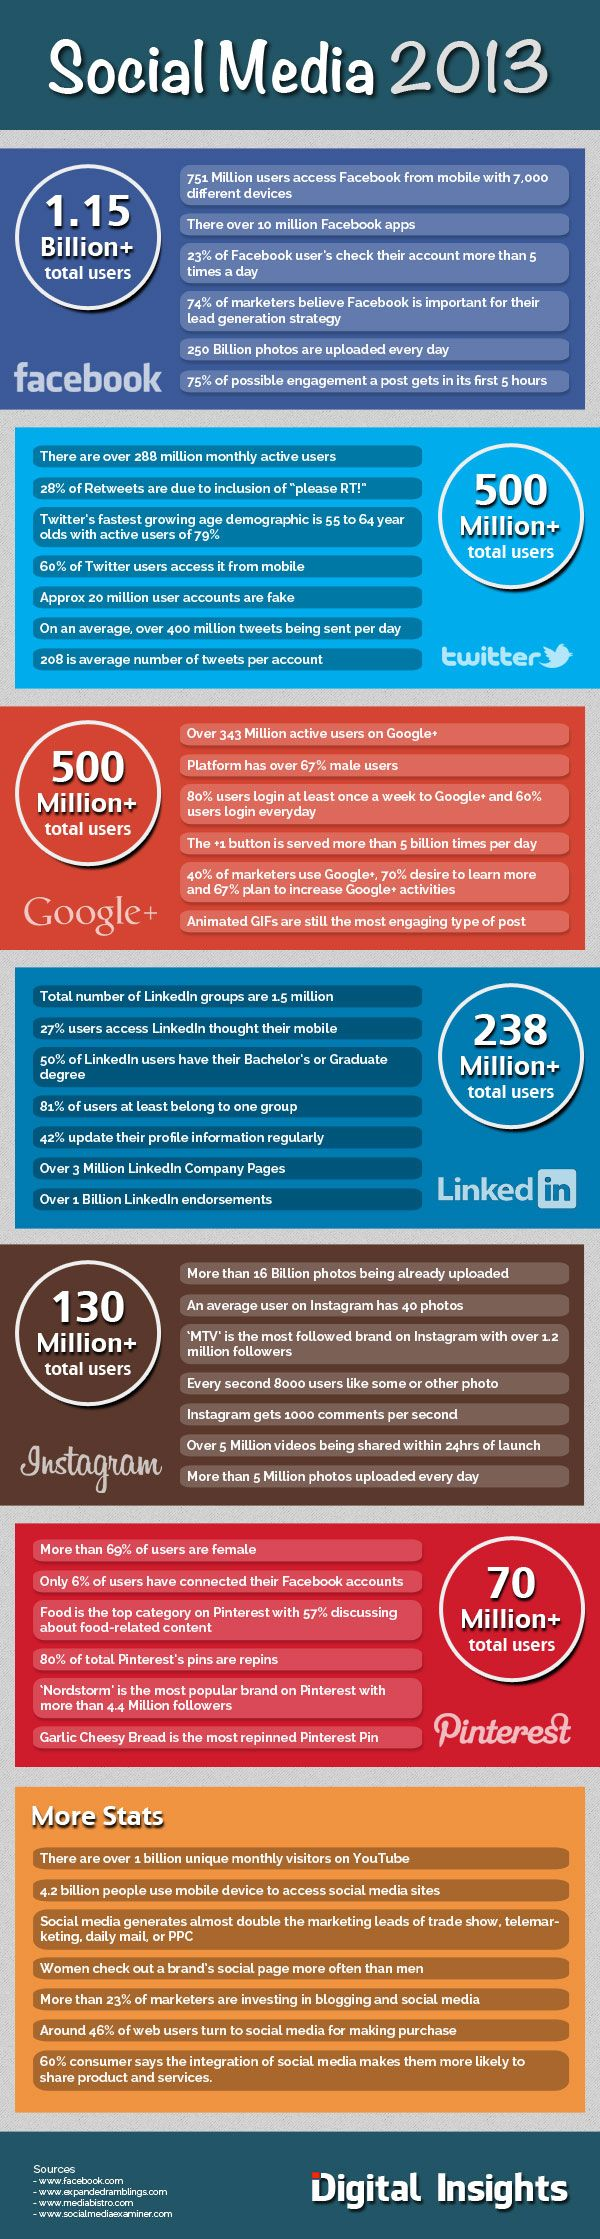 Social Media Trends for 2013 and What They Mean for Your Company. Animated GIF's are the most popular posts on Google Plus #socialmedia